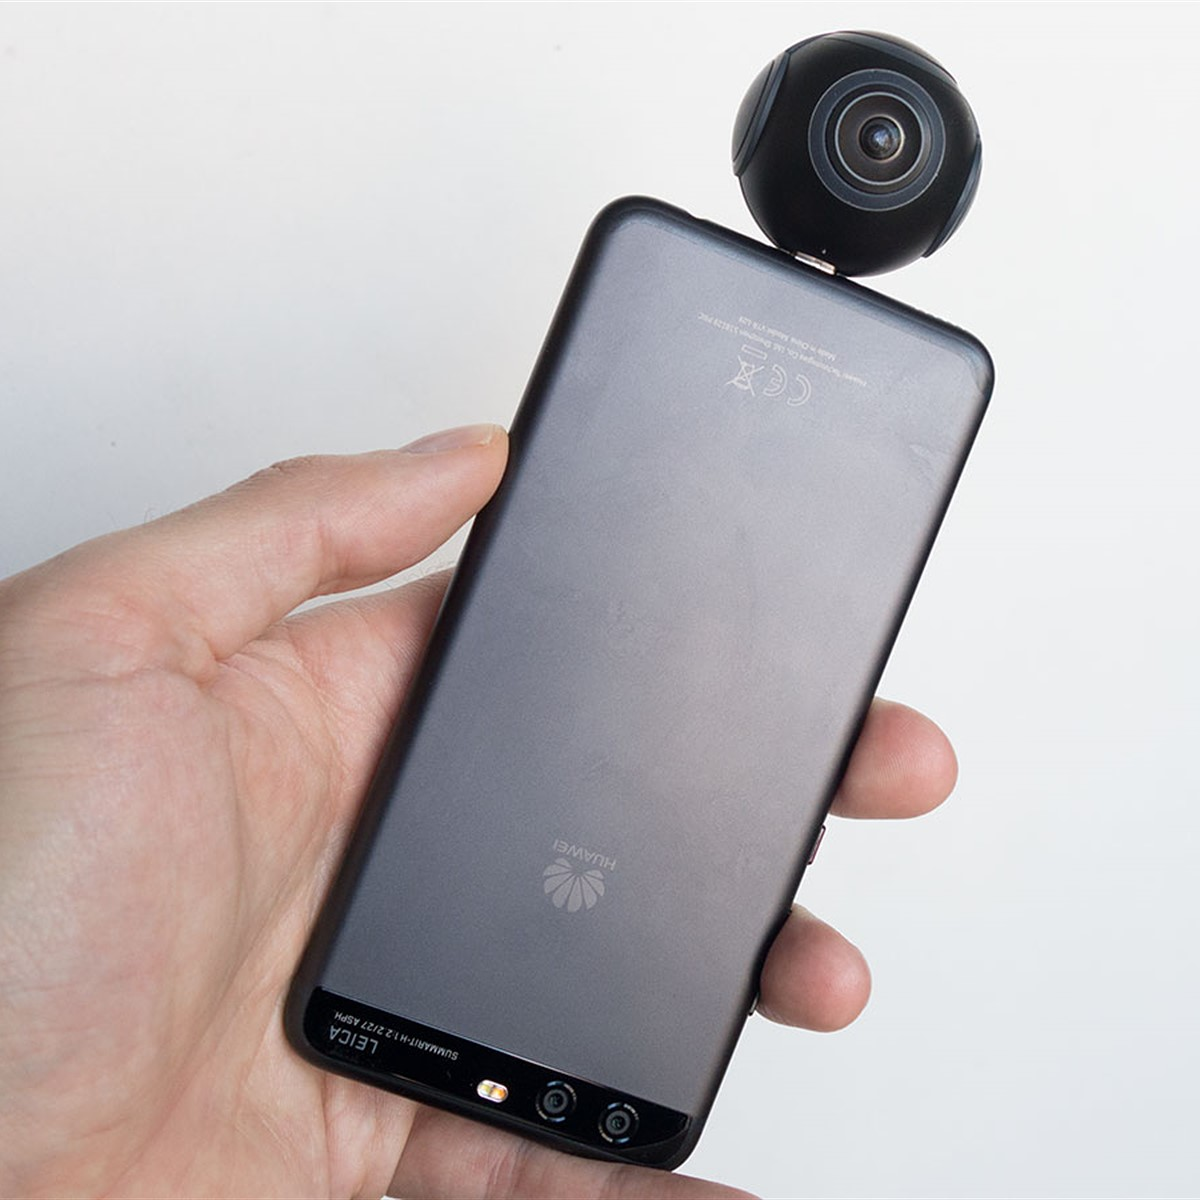 Insta360 Air 360-degree camera for Android quick review: Digital